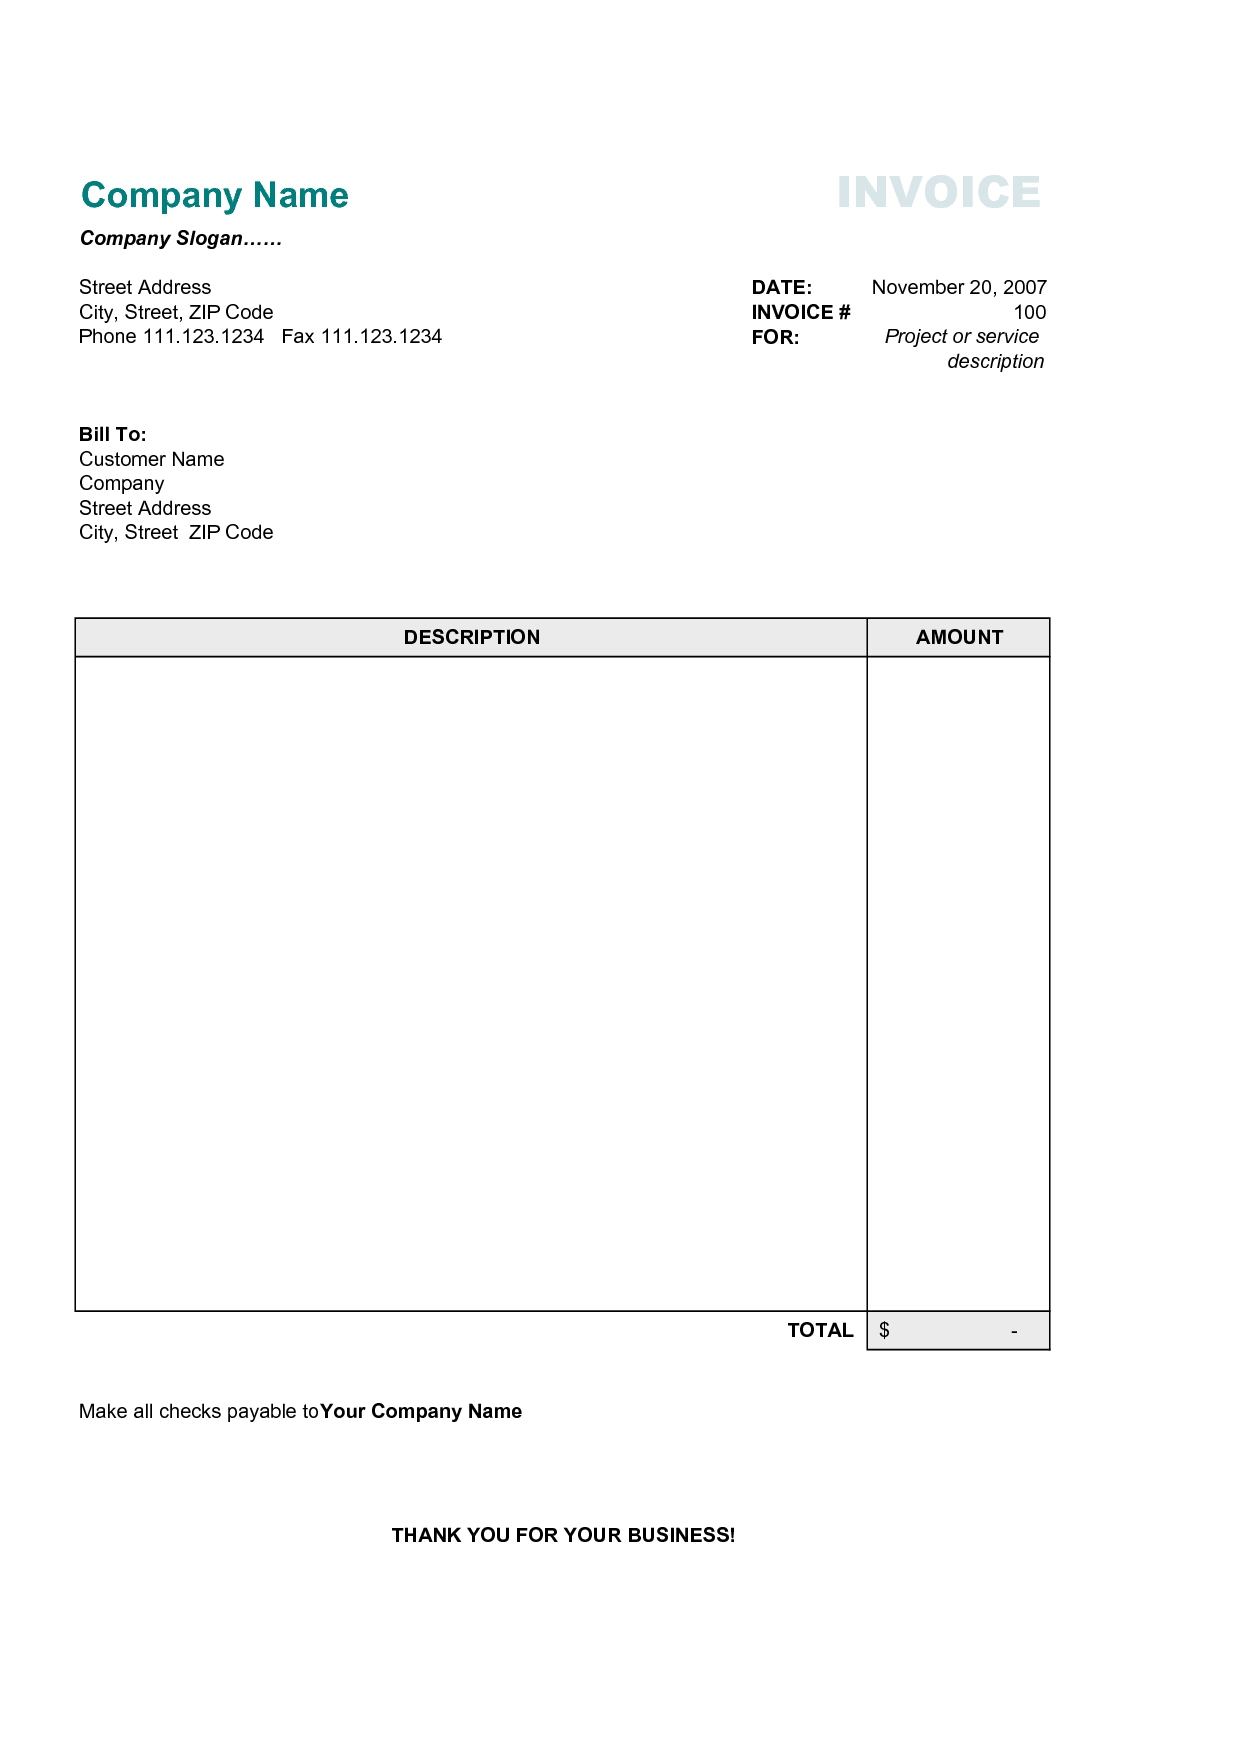 Invoices Templates Free